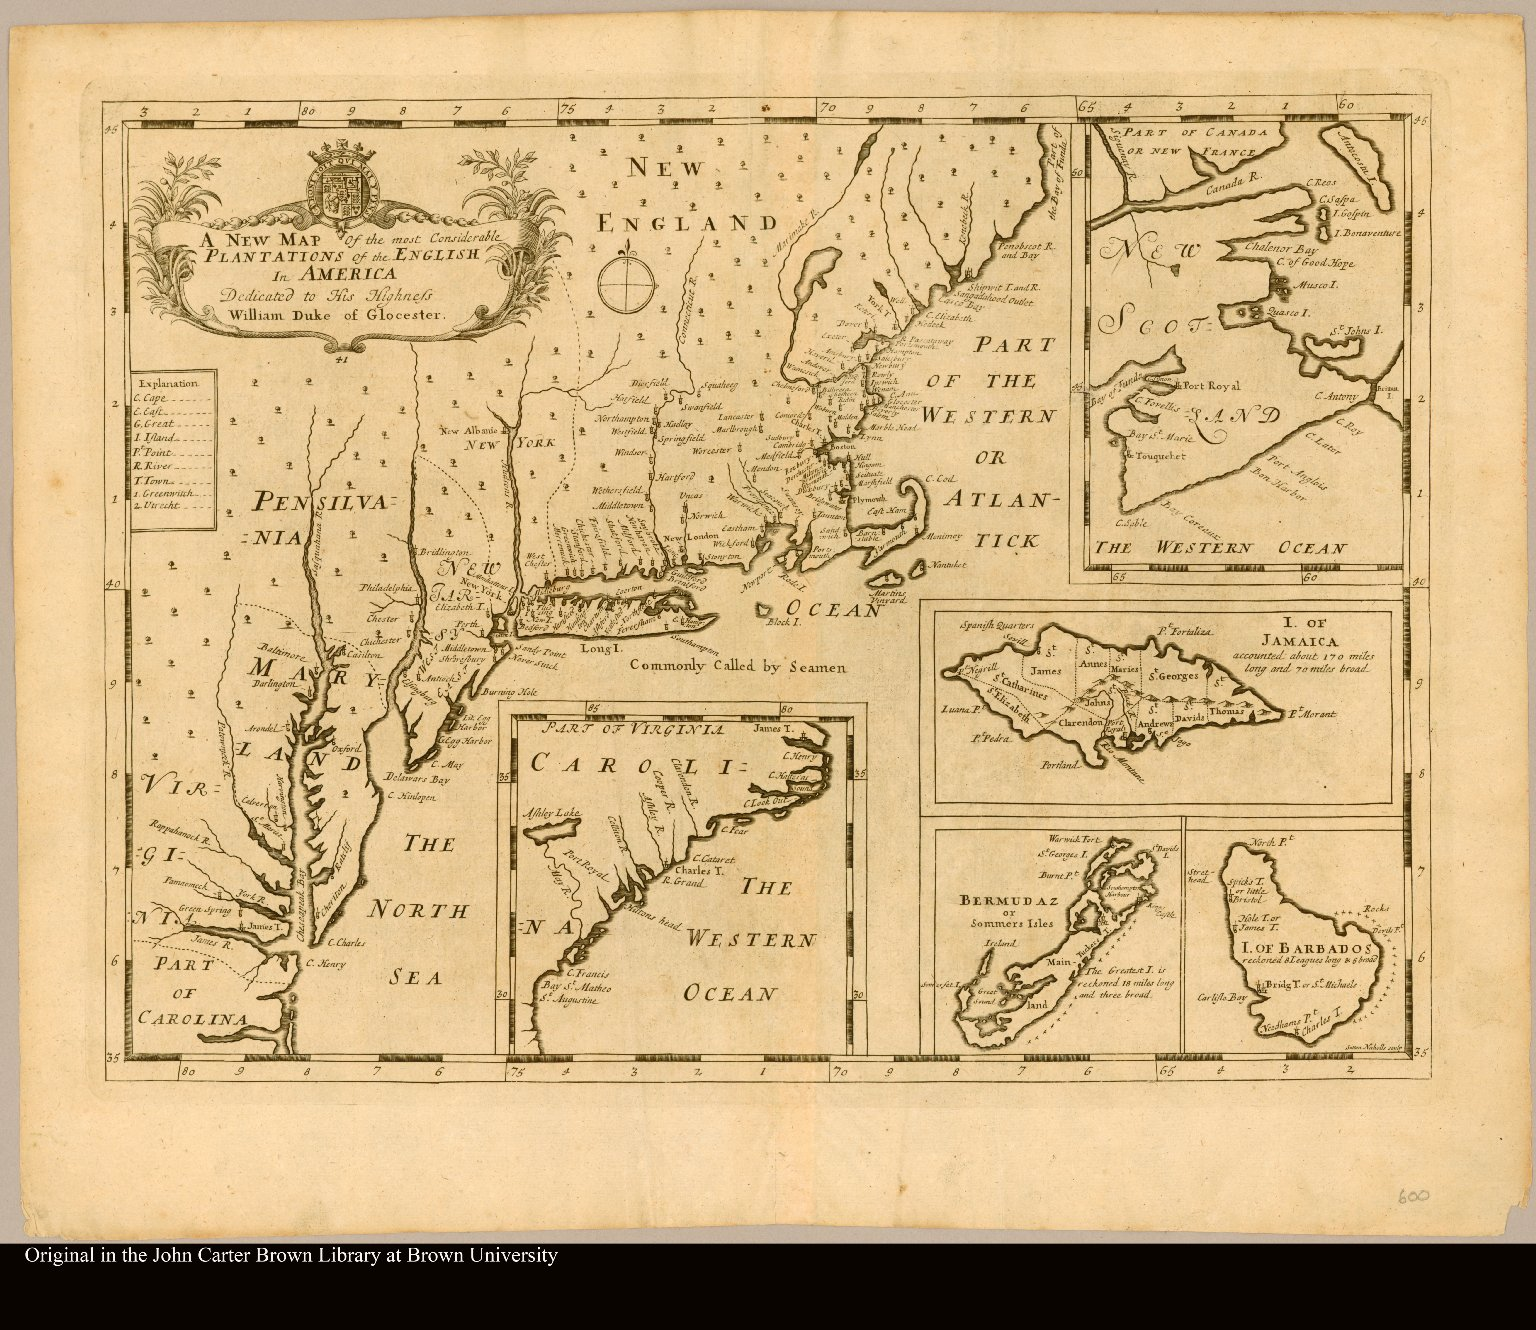 A new map of the most considerable plantations of the English in America Sutton Nicholls, sculp